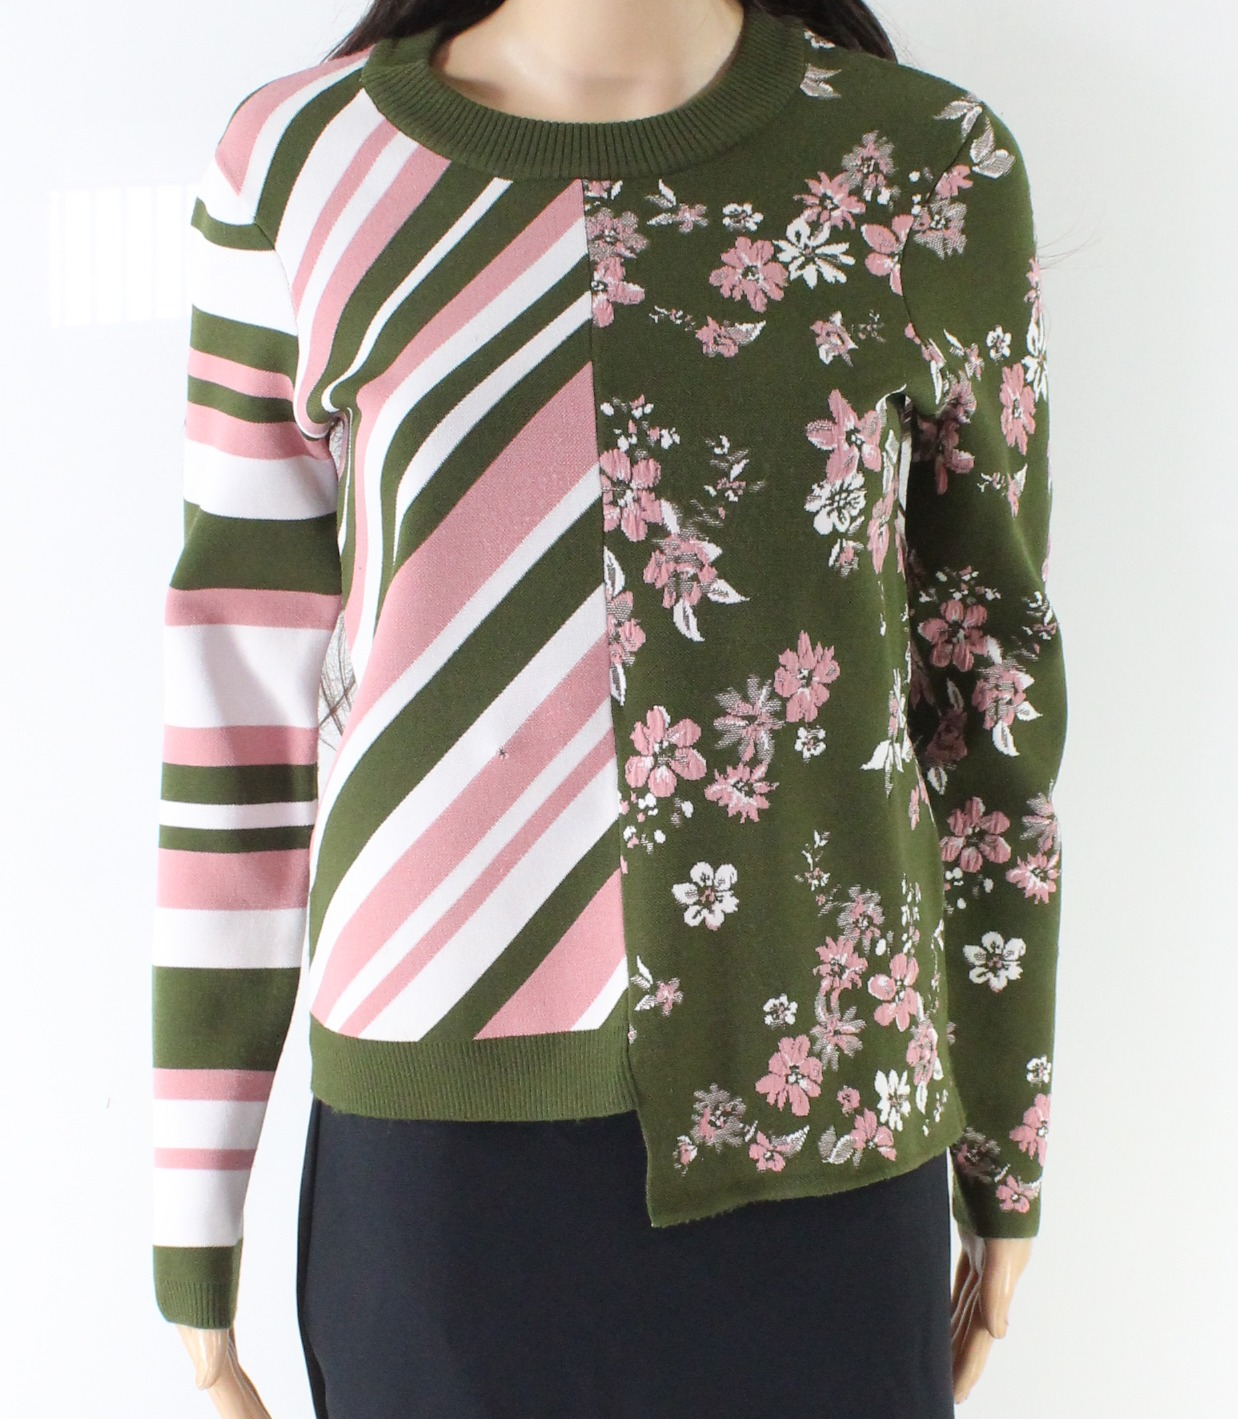 f628d50c2c Details about Milly Green Women s Size P Petite Floral Striped Crewneck  Sweater  375-  955